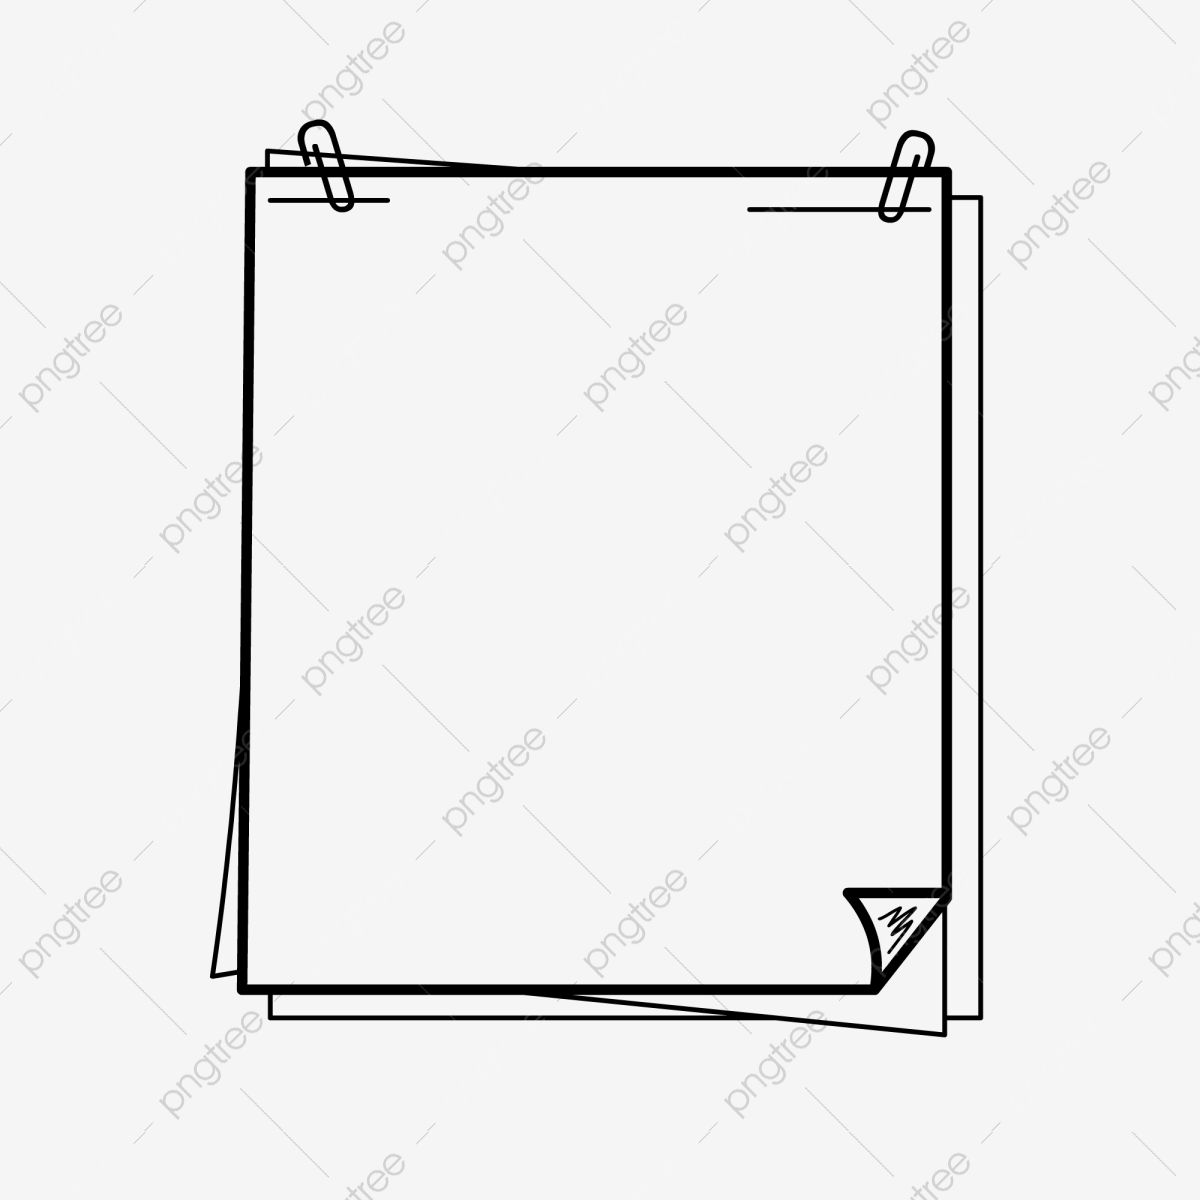 Hand Drawn Black And White Lines Note Paper Border Border Clipart Photo Cartoon Hand Drawn Style Border Png And Vector With Transparent Background For Free D Black And White Lines Borders